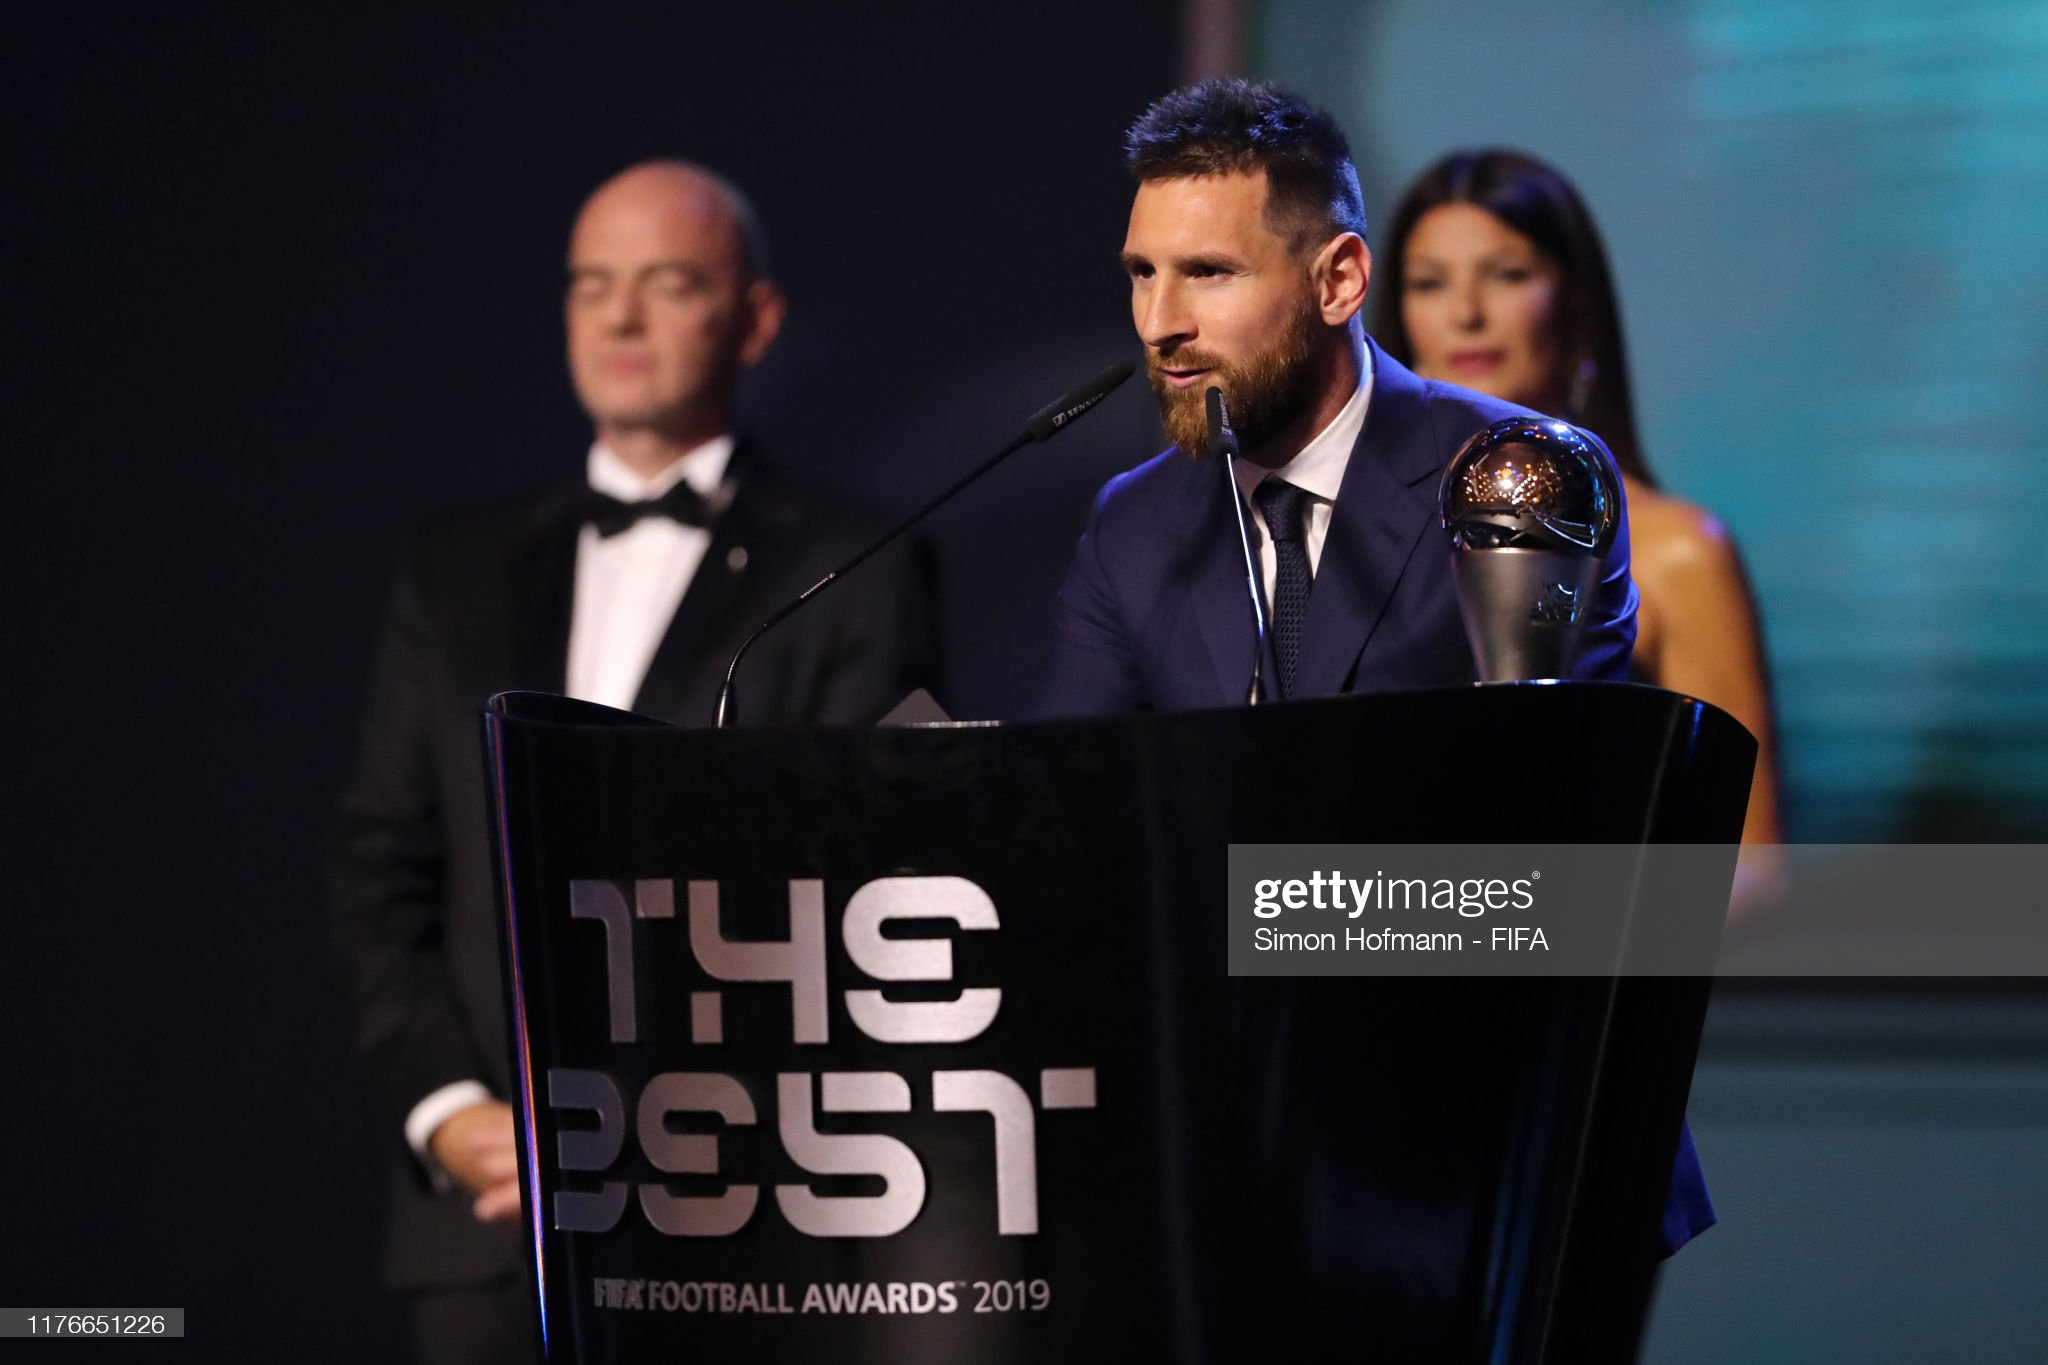 The Best FIFA Football Awards 2019 The-best-fifa-mens-player-award-winnrer-lionel-messi-of-fc-barcelona-picture-id1176651226?s=2048x2048